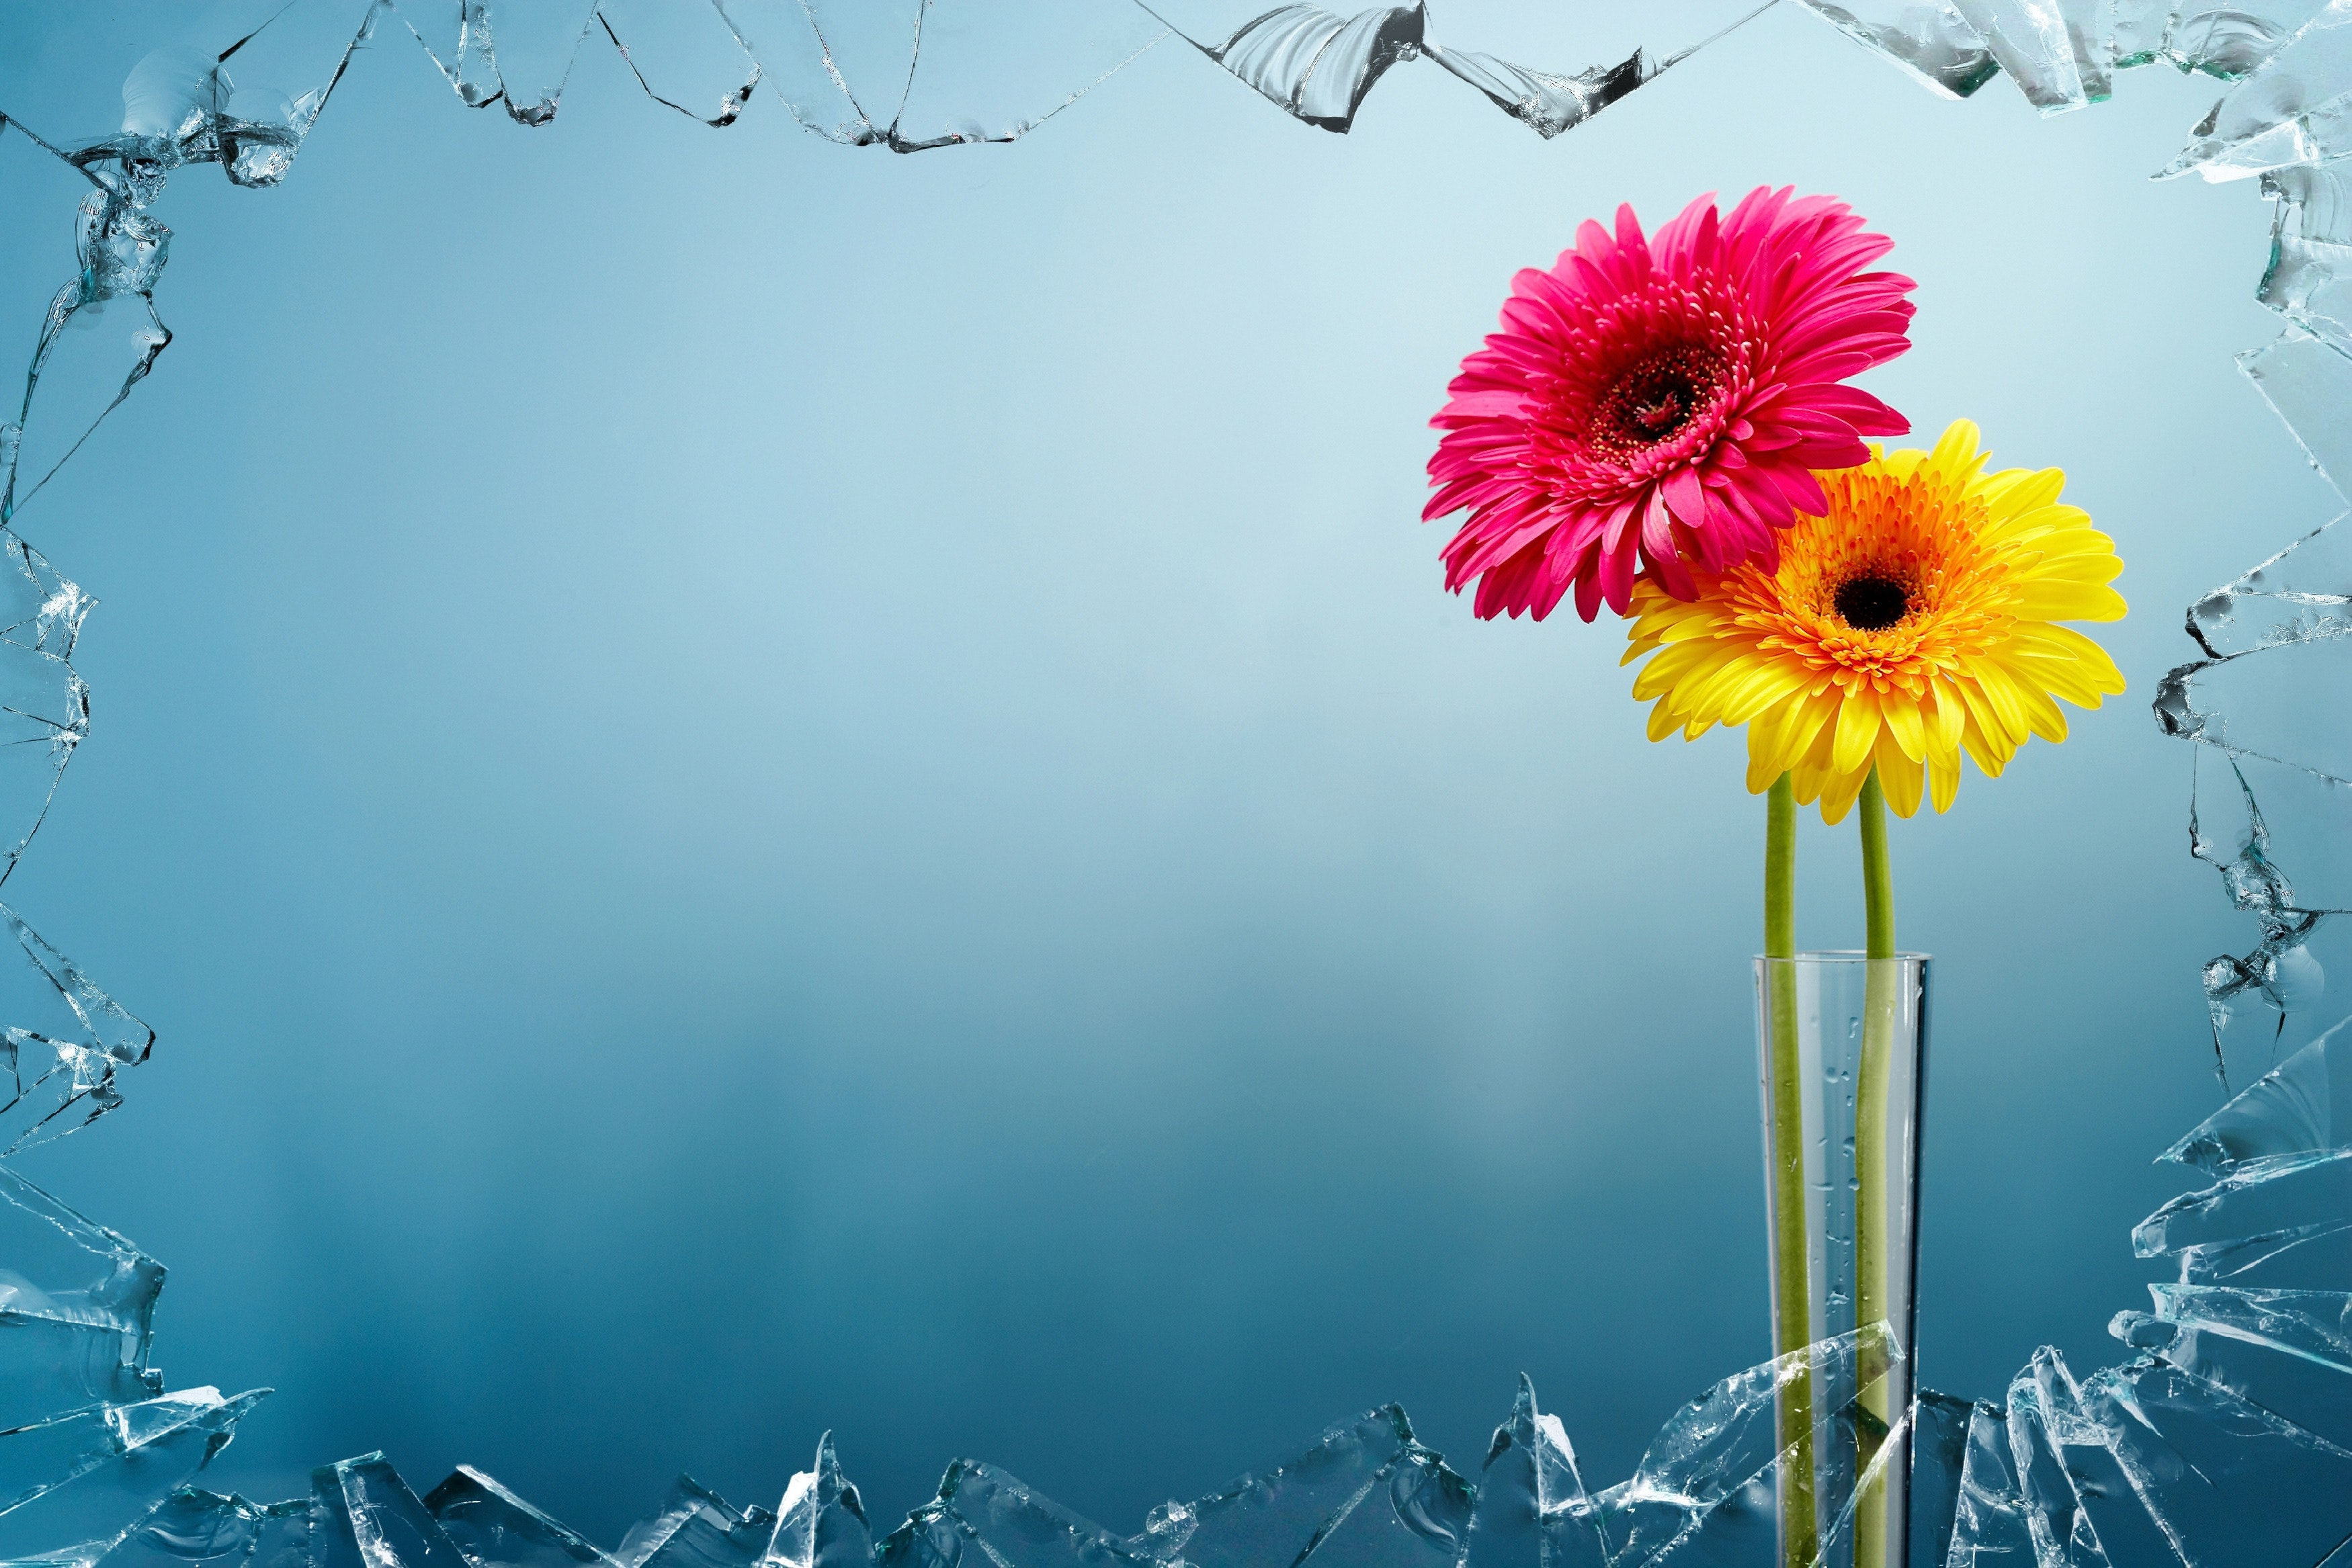 Yellow And Pink Flowers View Behind Broken Glass Free Stock Photo